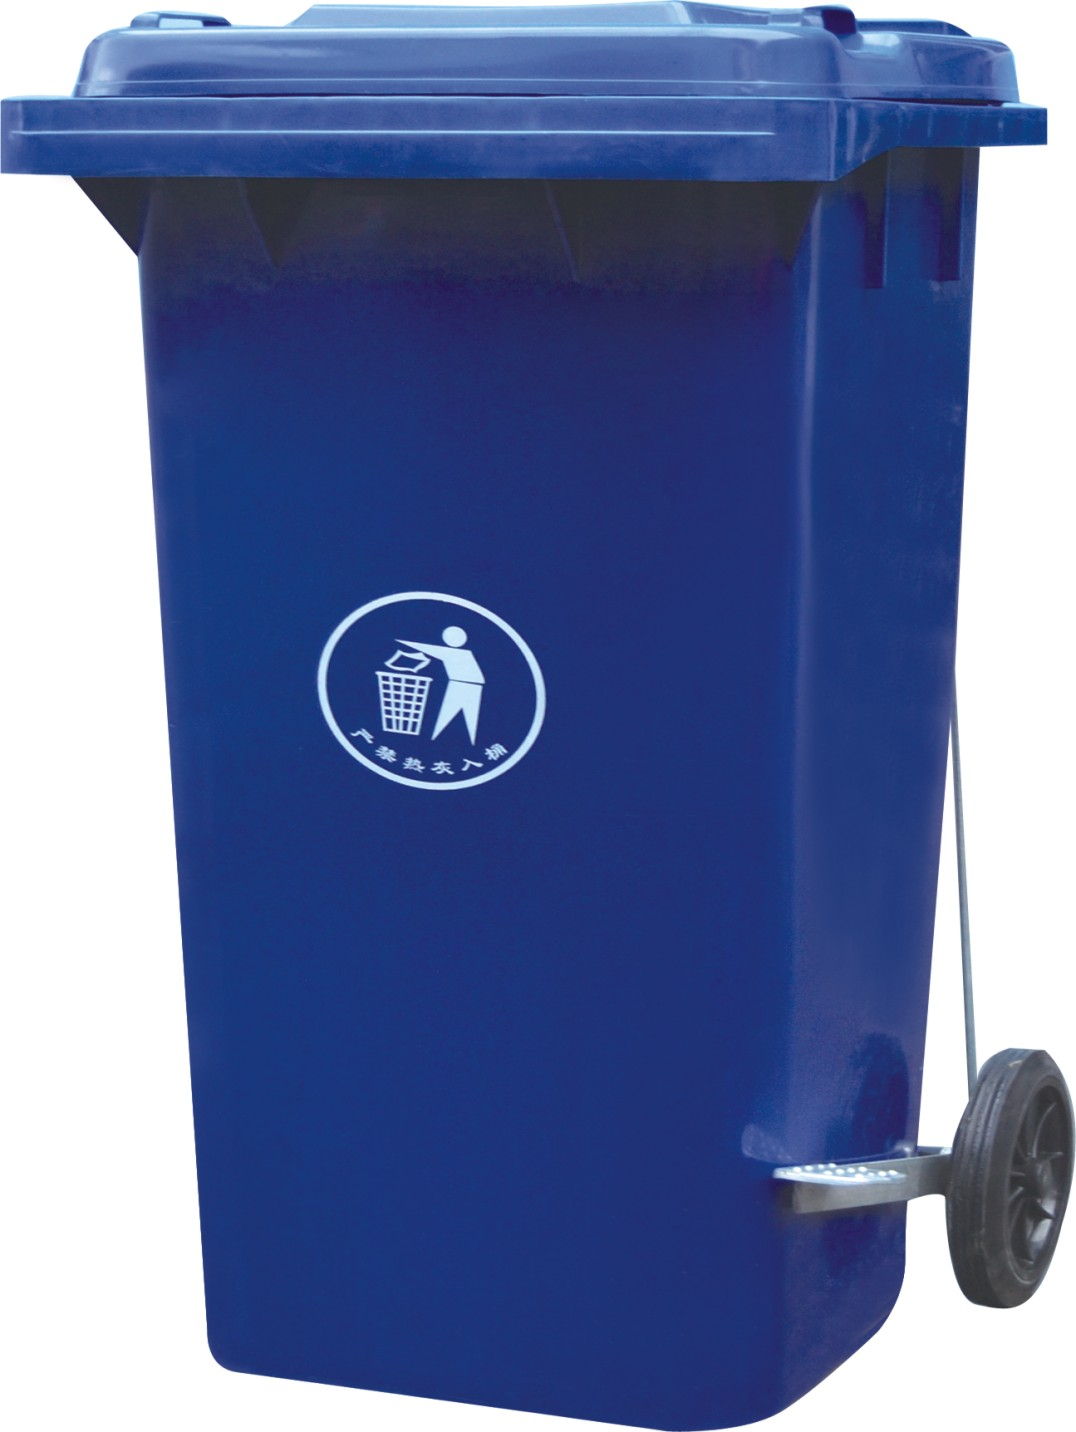 240L street dustbin/animal fecal container/plastic dustbin with lid